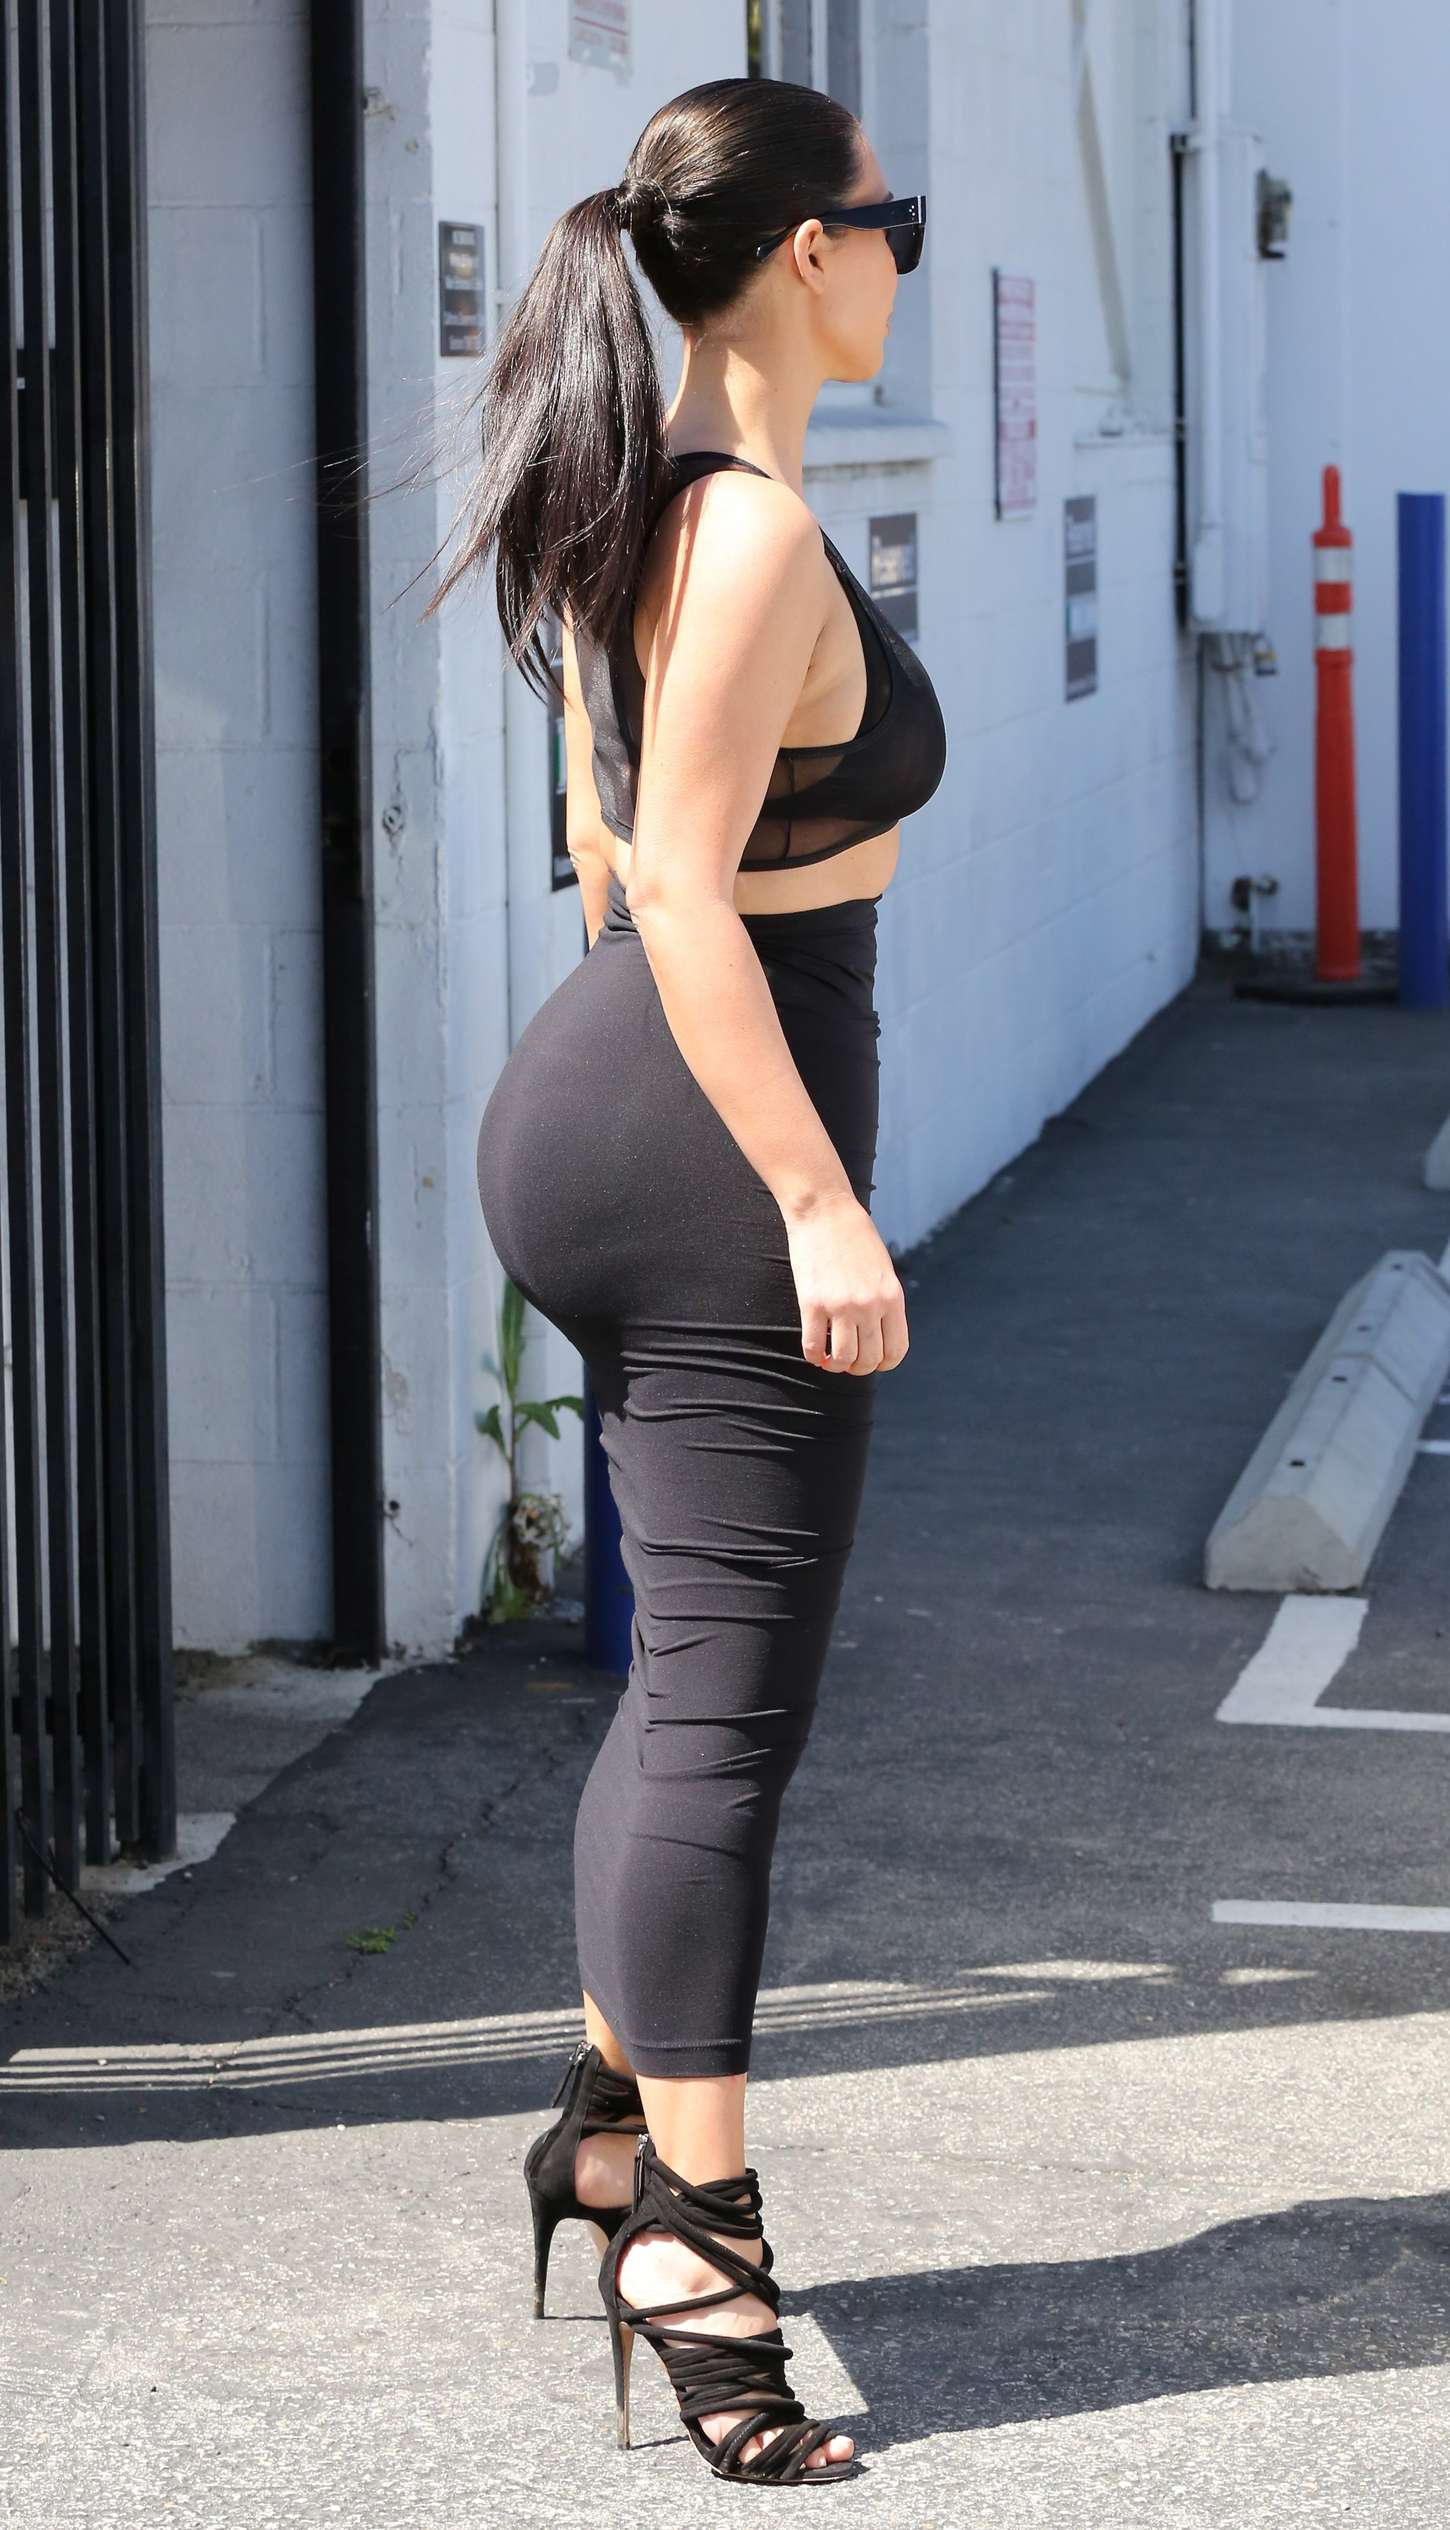 kim kardashian big ass nude